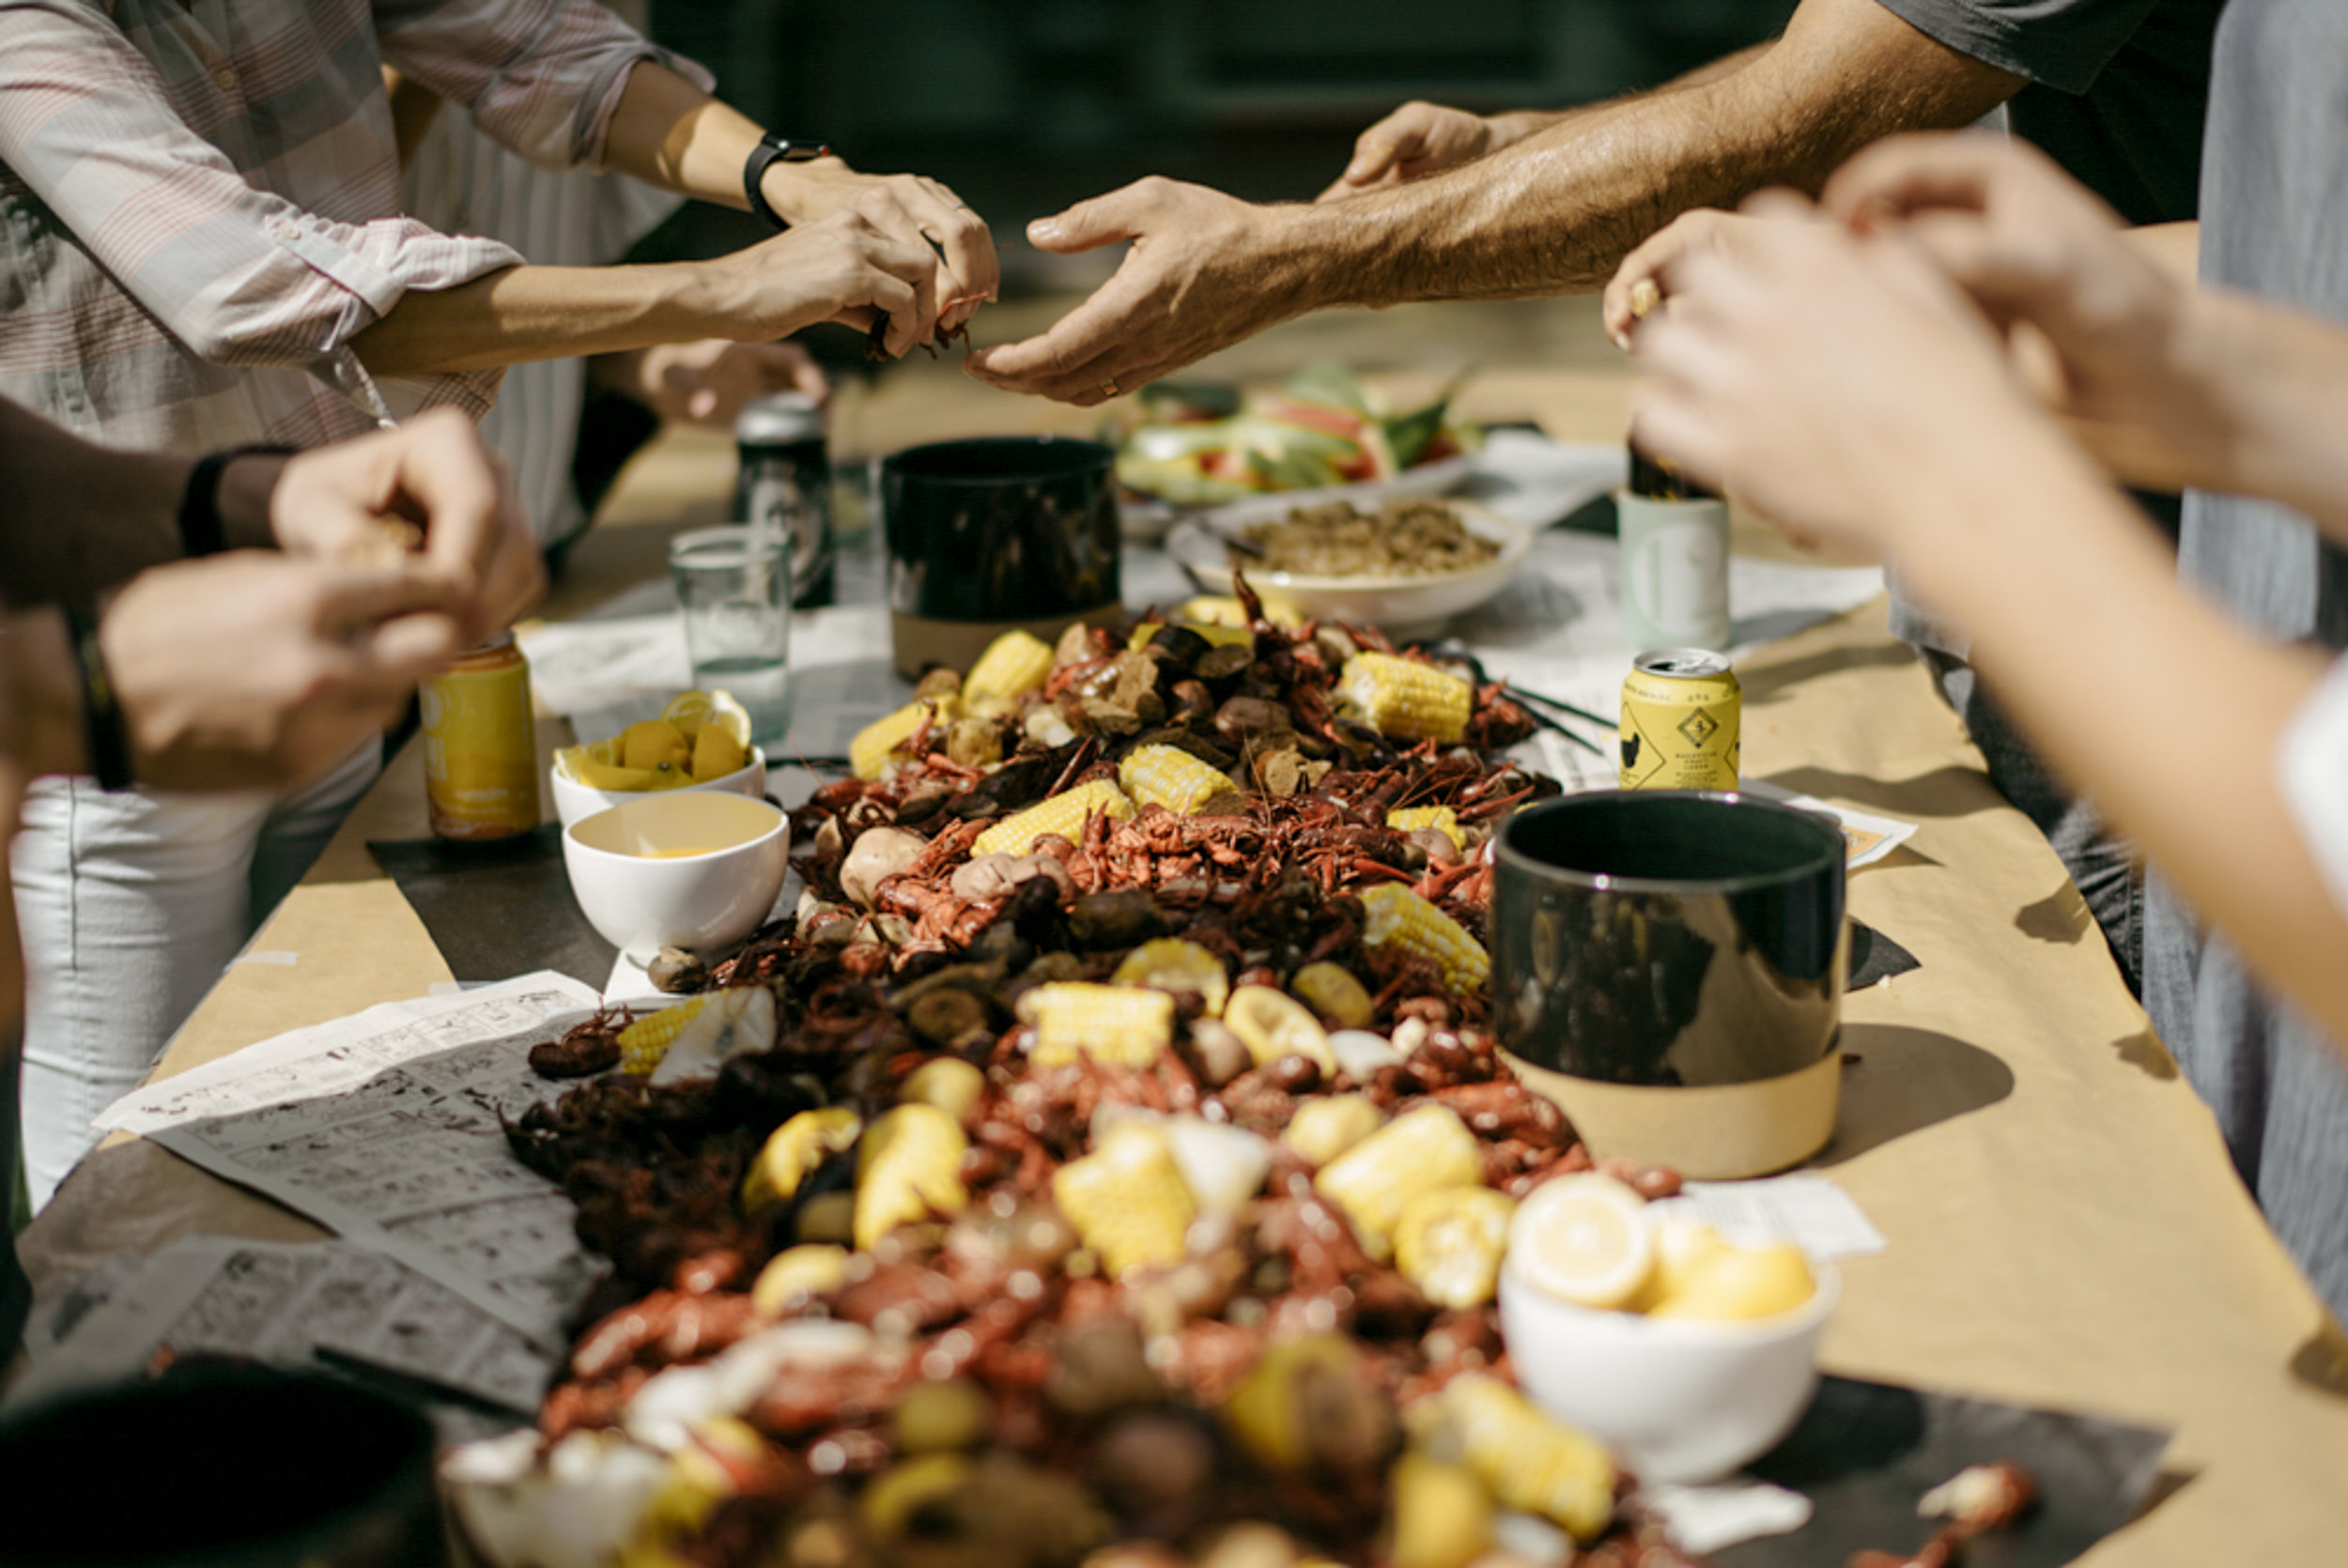 176-mayker-creative-crawfish-boil-summer-party-ideas-rentals-nashville-design-tips-hosting-entertaining-Fox-Country-Farmhouse-Fourth-of-July.jpg